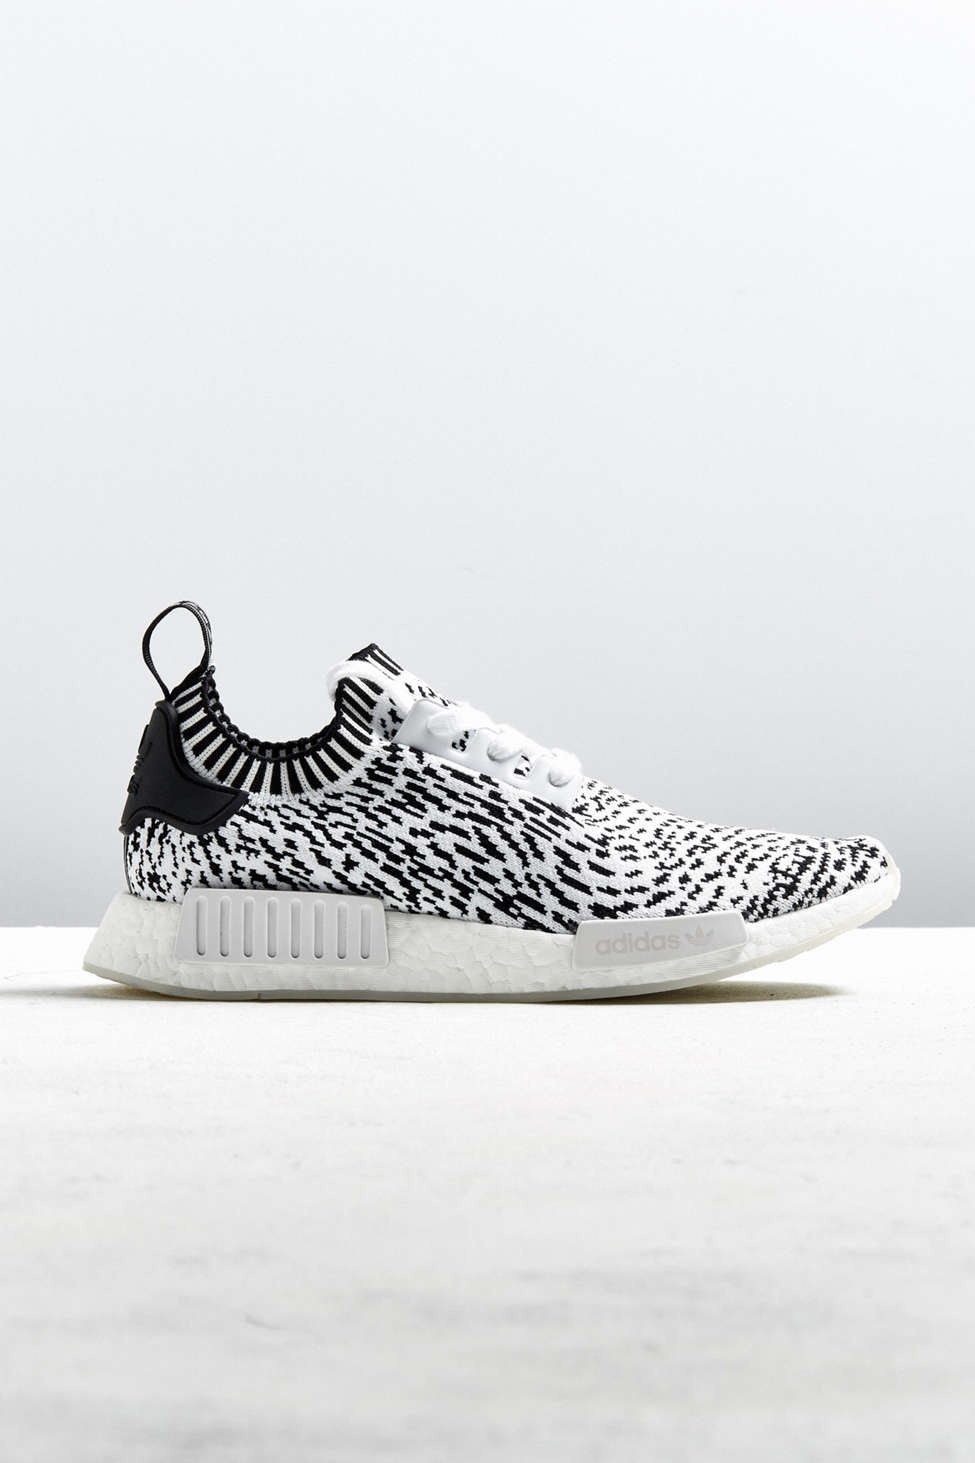 Adidas NMD R1 spotted primeknit zapatilla Urban Outfitters Canada